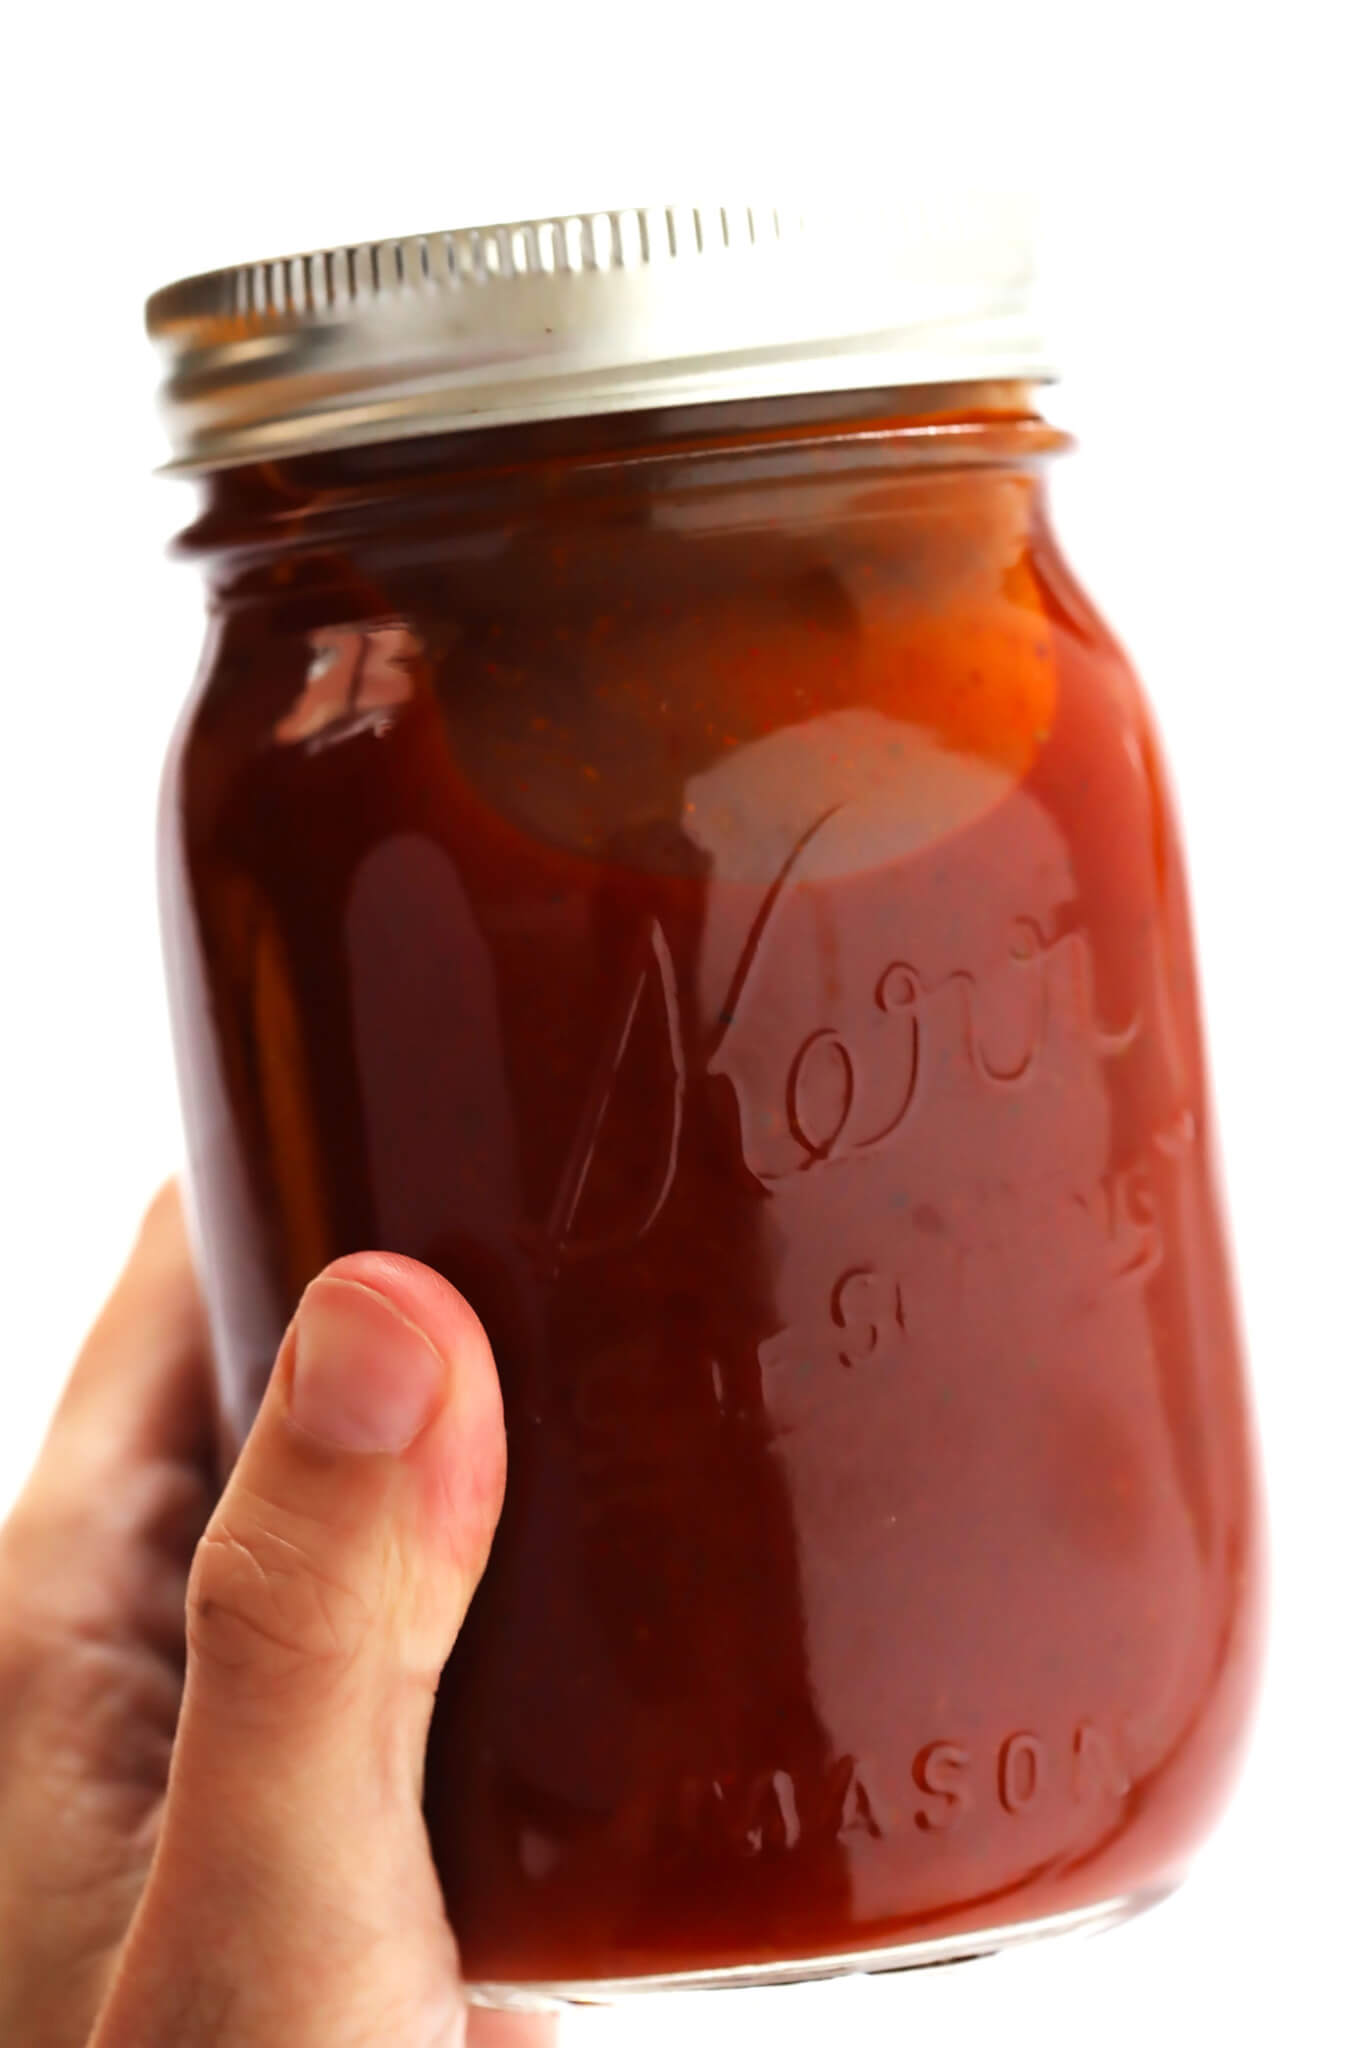 My favorite homemade BBQ sauce recipe! It's quick and easy to make, and made with ingredients I feel good about. | gimmesomeoven.com